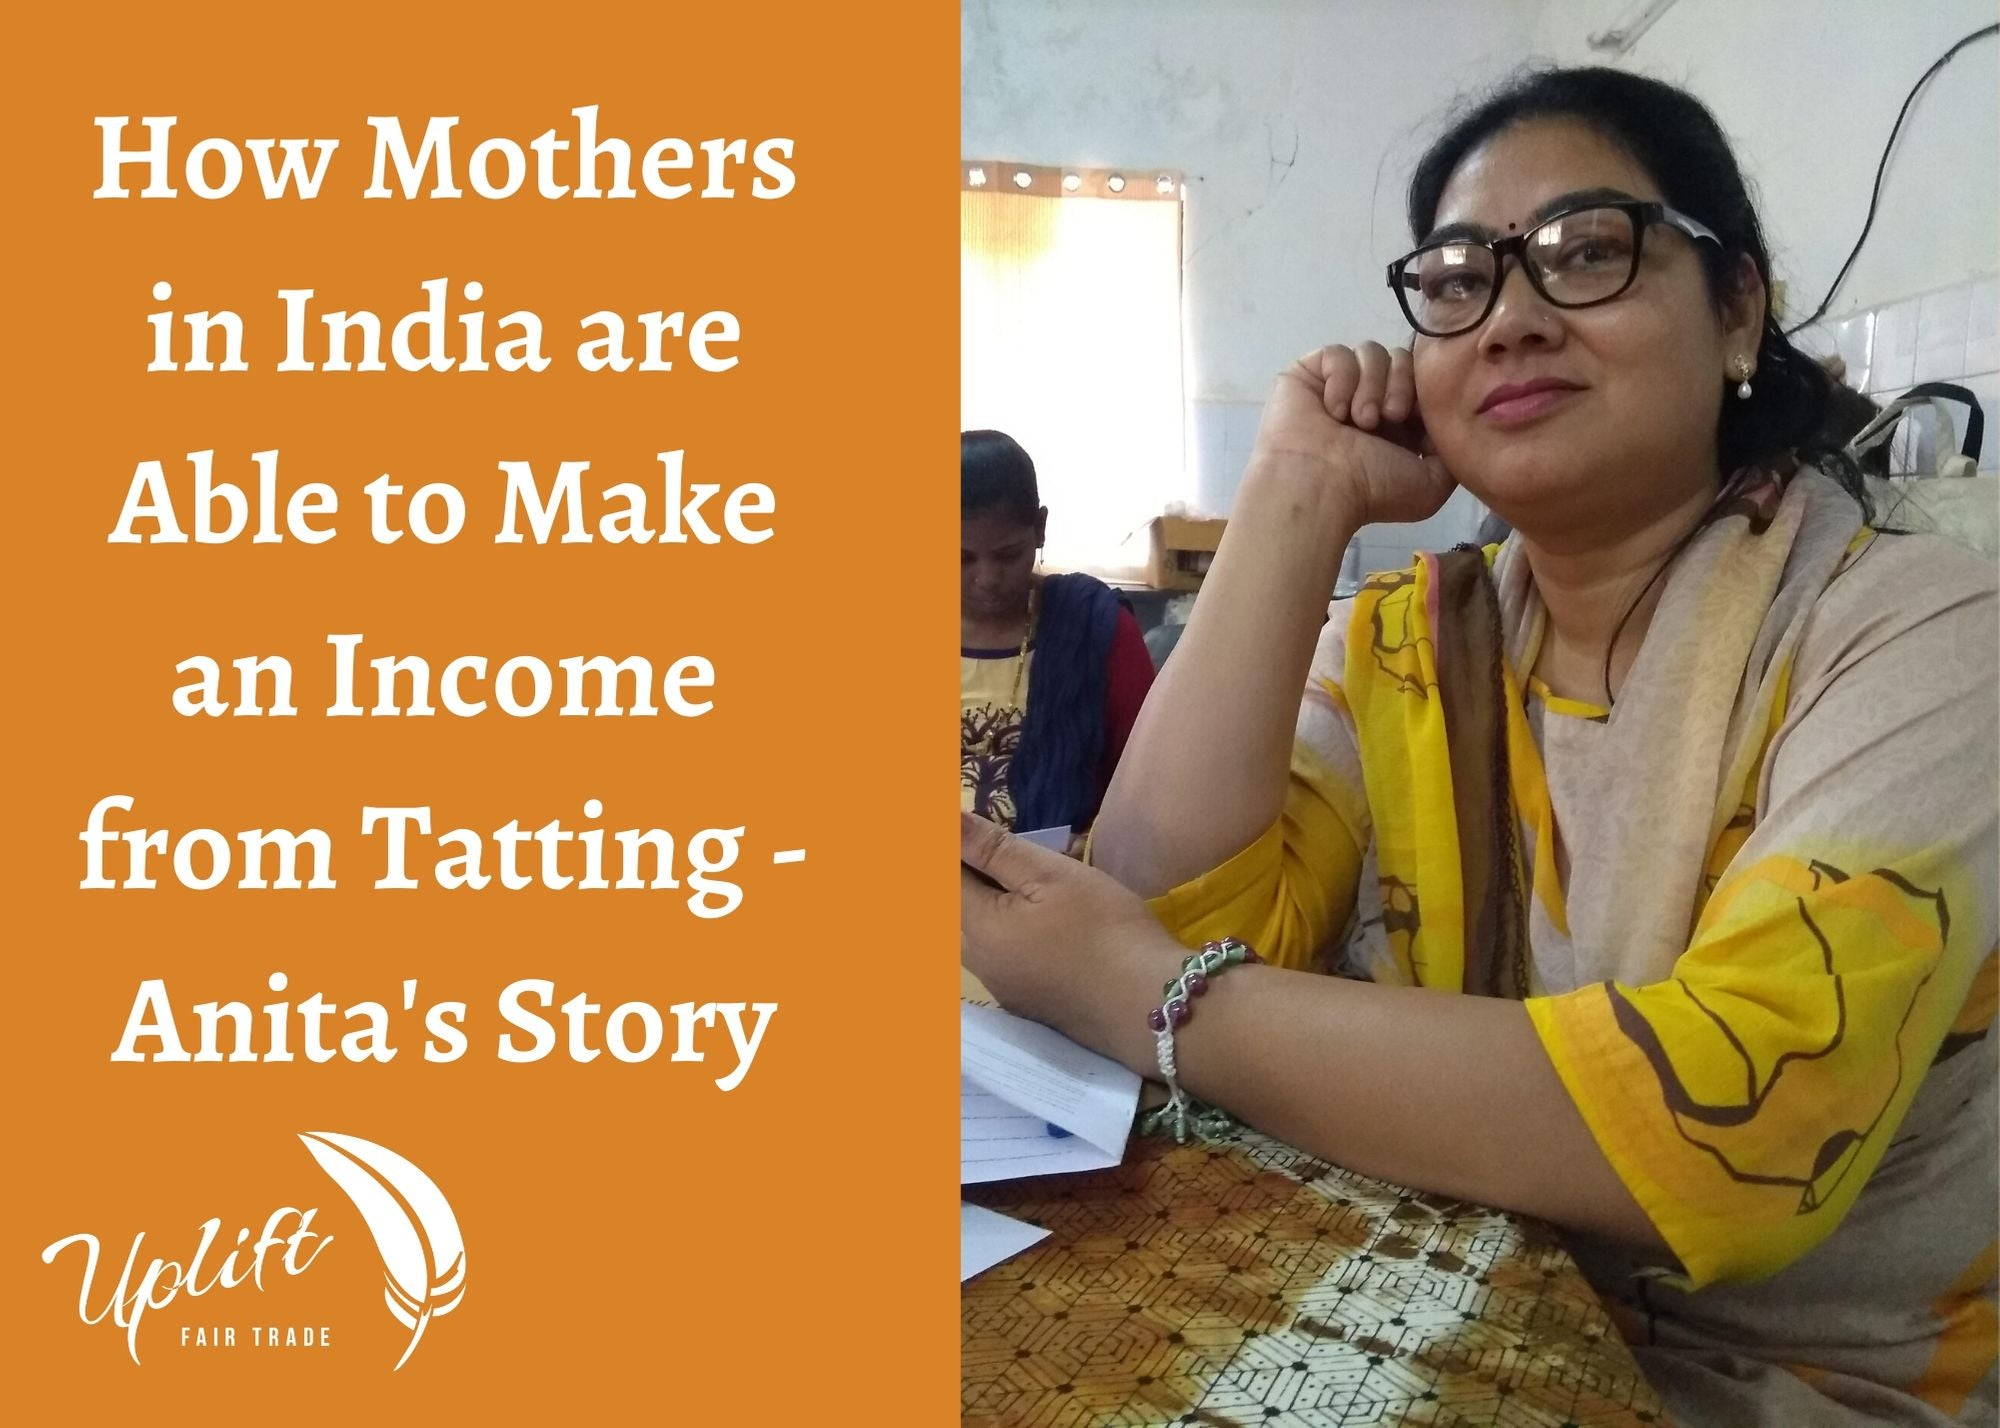 How Mothers in India are Able to Make an Income from Tatting - Anita's Story